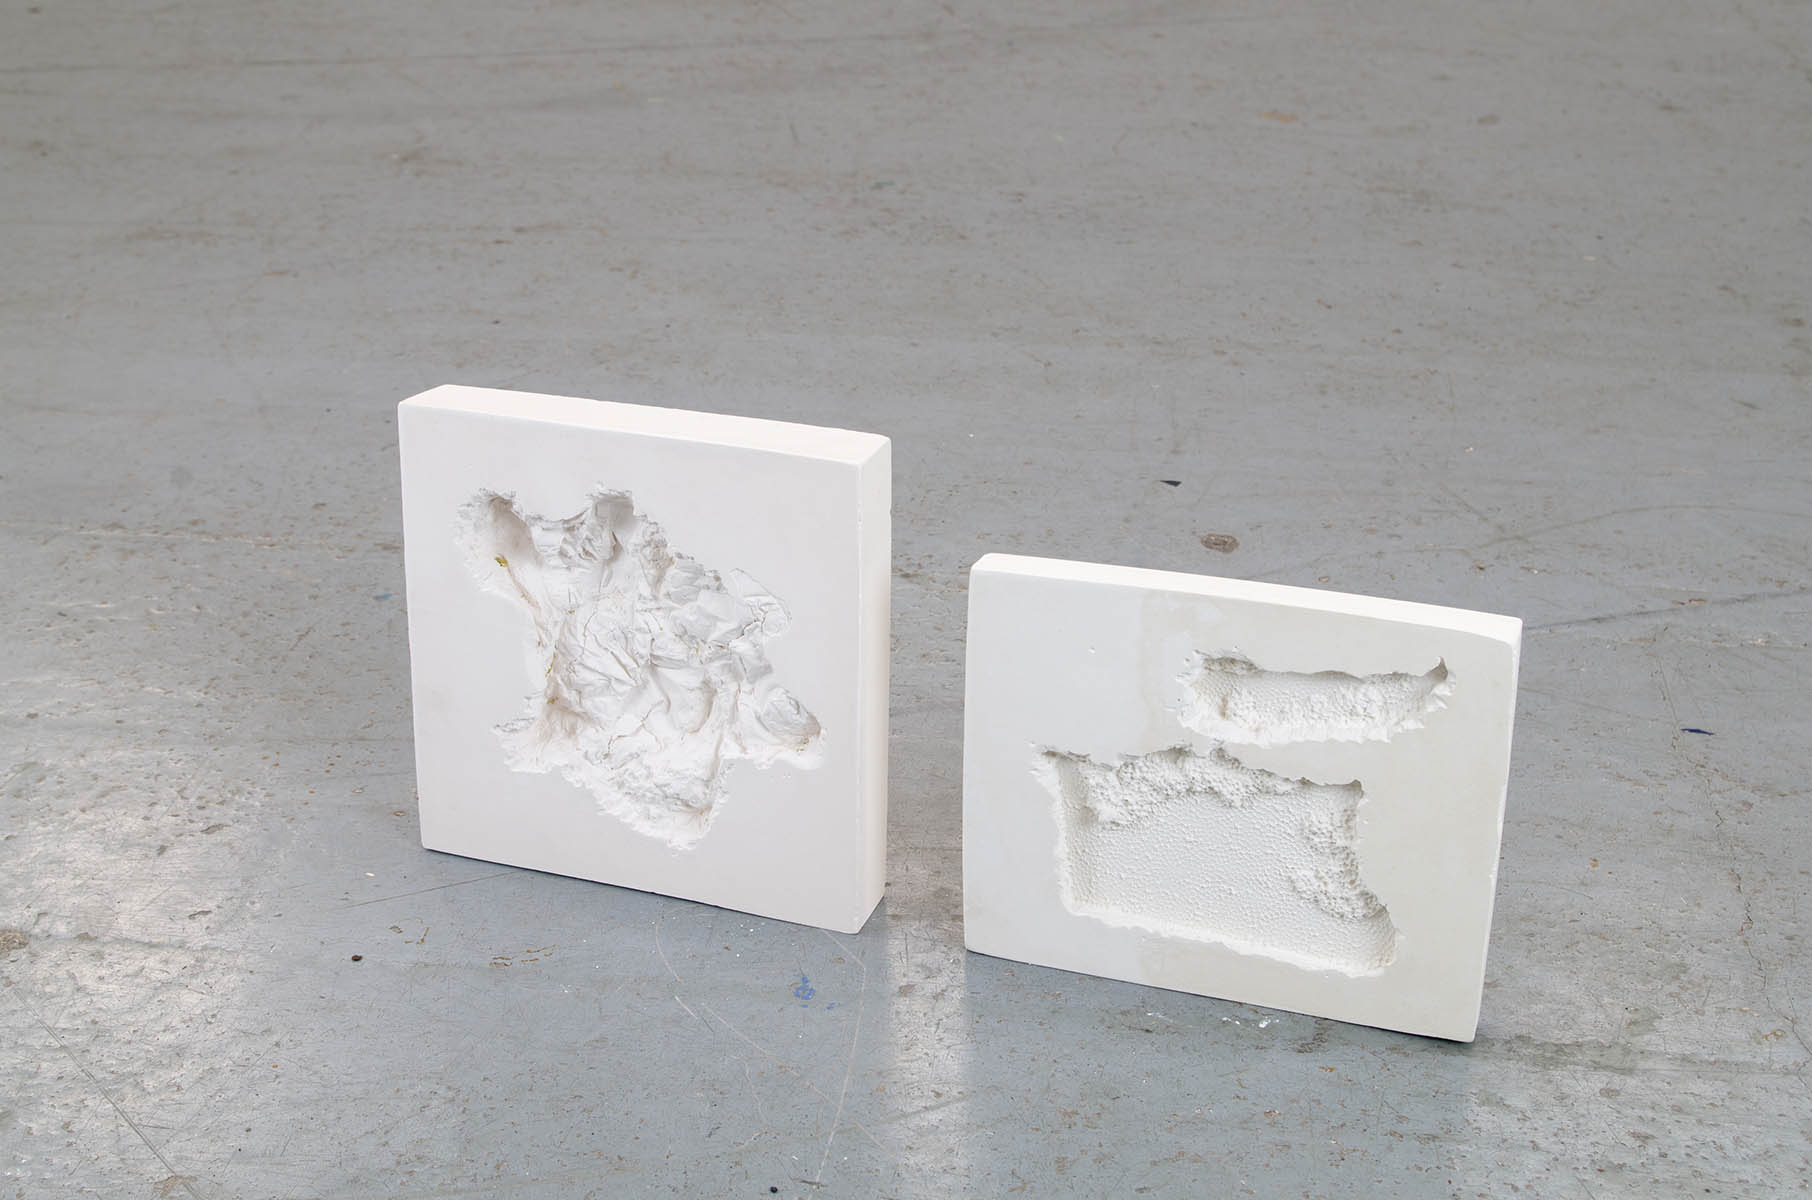 Plaster sculptures by artist Molly Harcombe